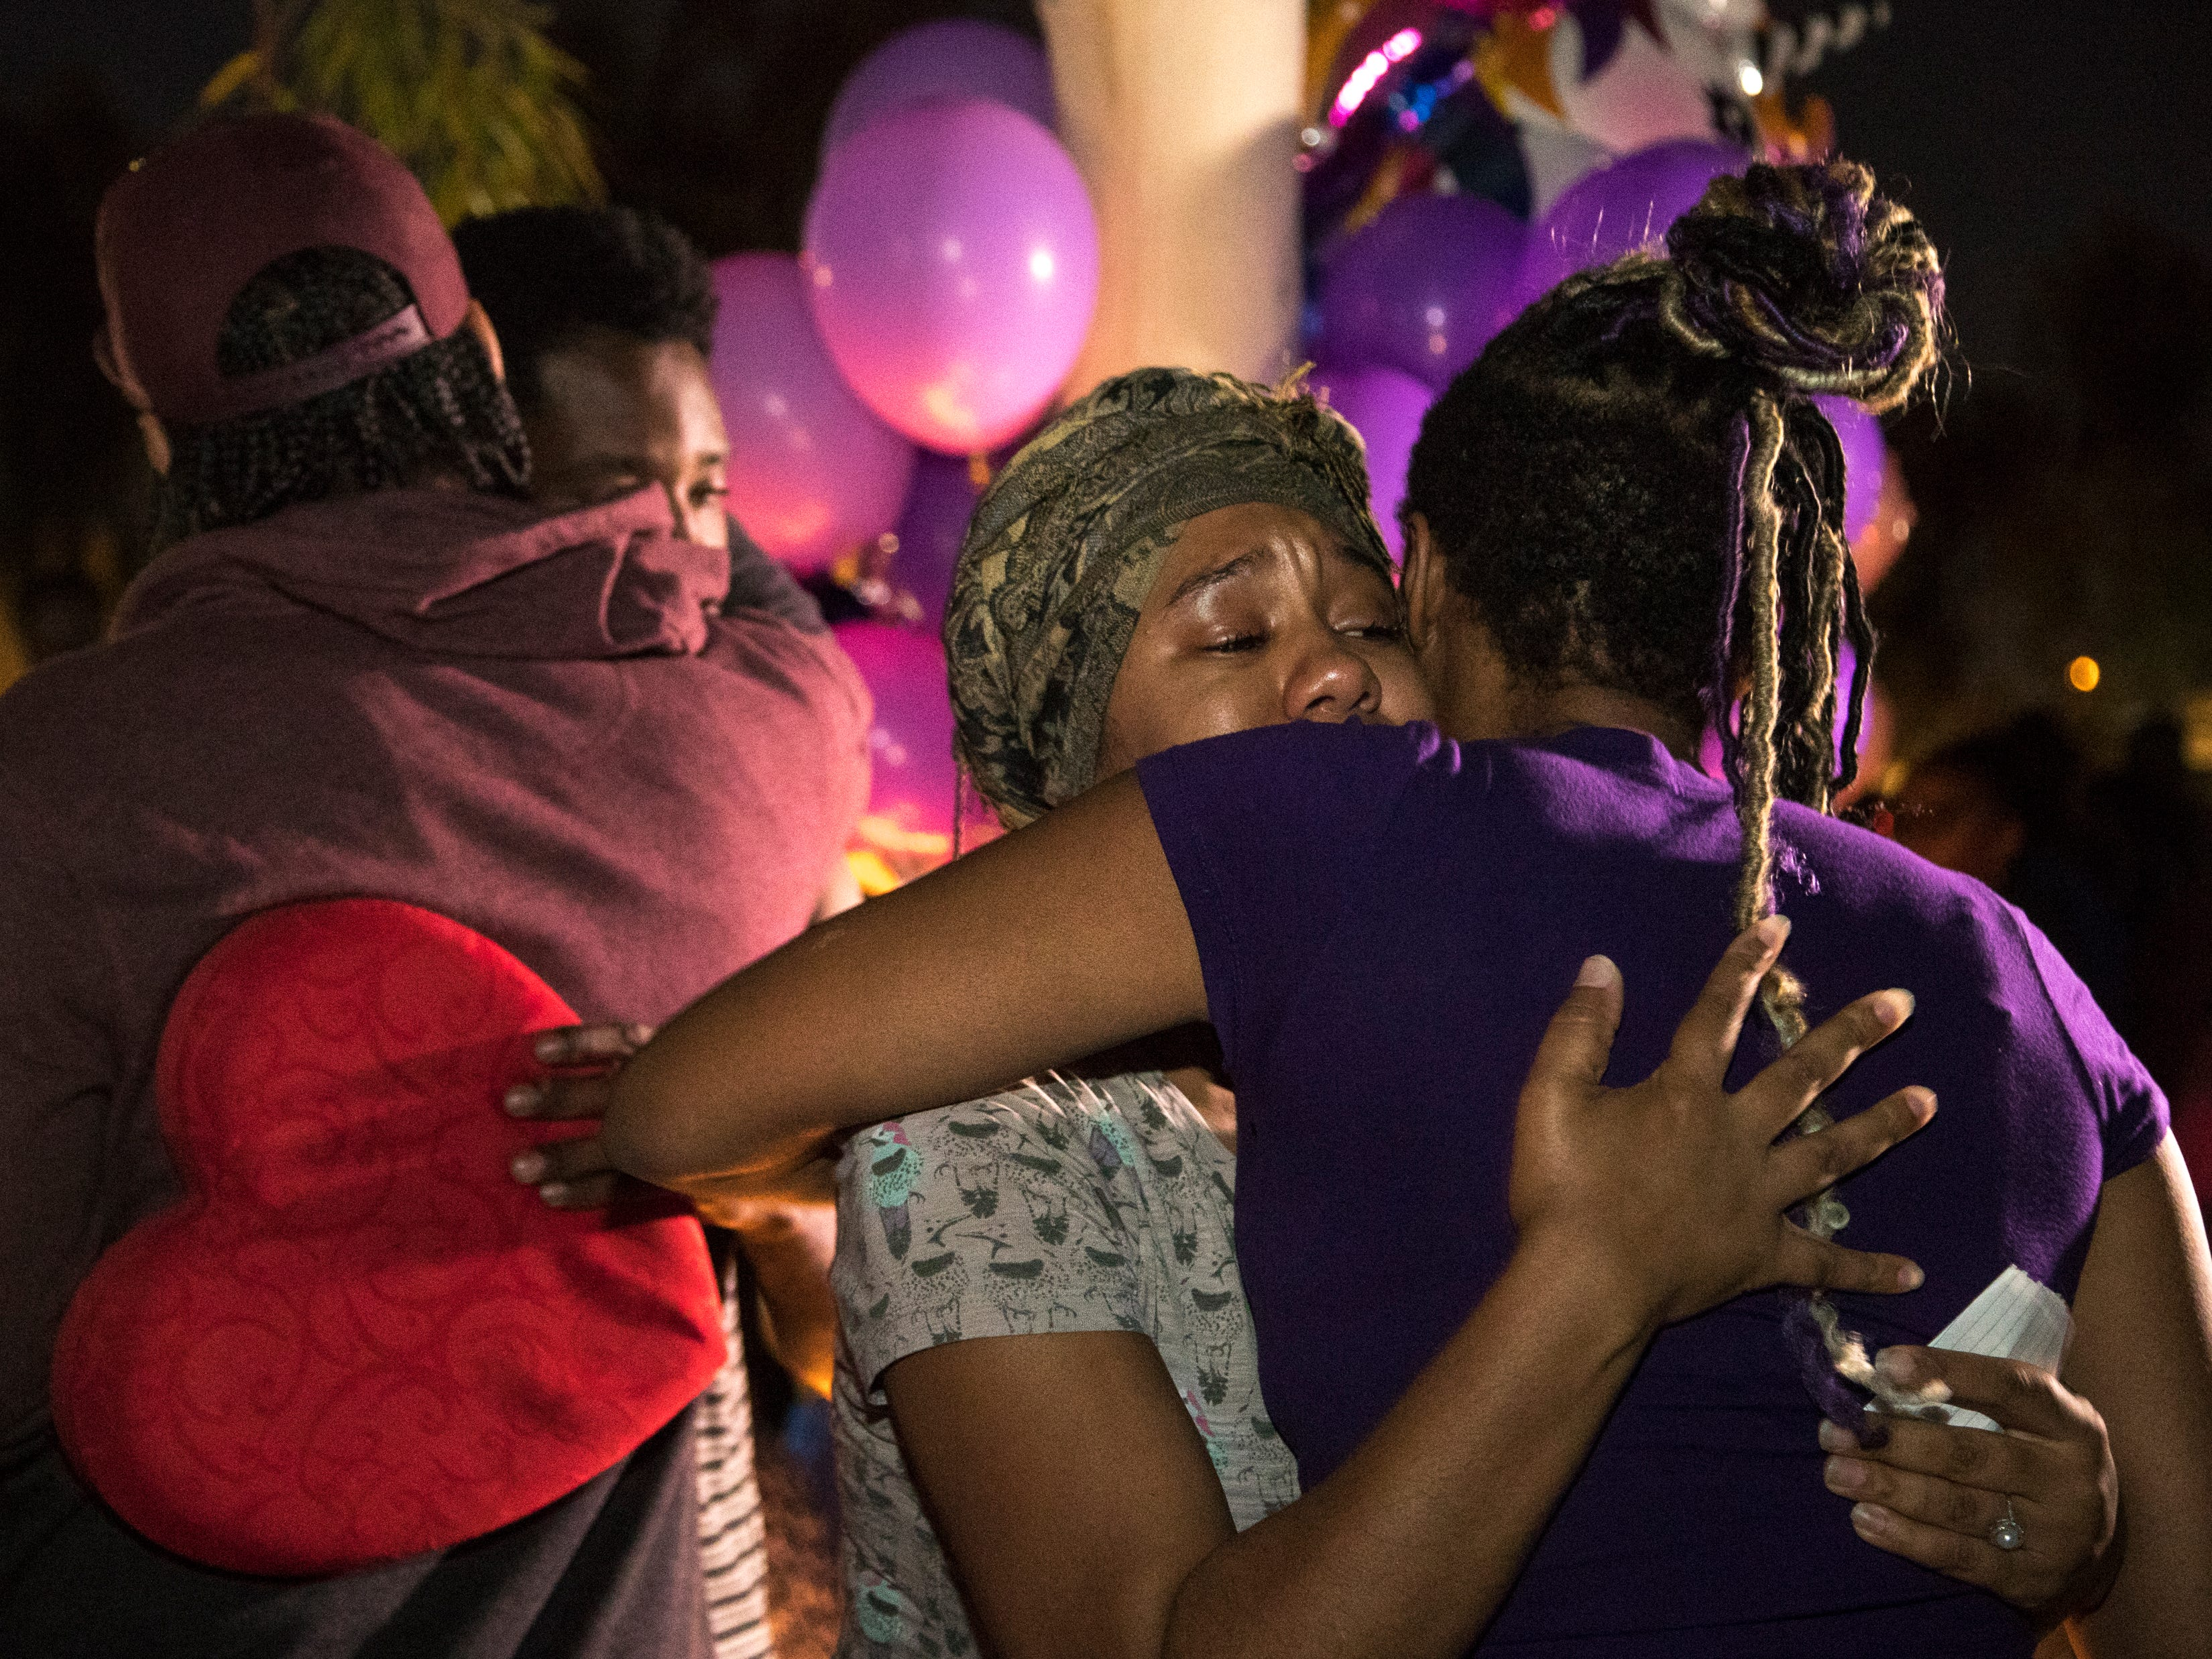 Taniesha Brown (right, center Summer's mom) and Dharquintium Brown (left center, Summer's dad) are comforted during a vigil for Summer Bell Brown on April 5, 2019. Summer was shot in the driveway of her home and later died from her injuries in a suspected road-rage incident.